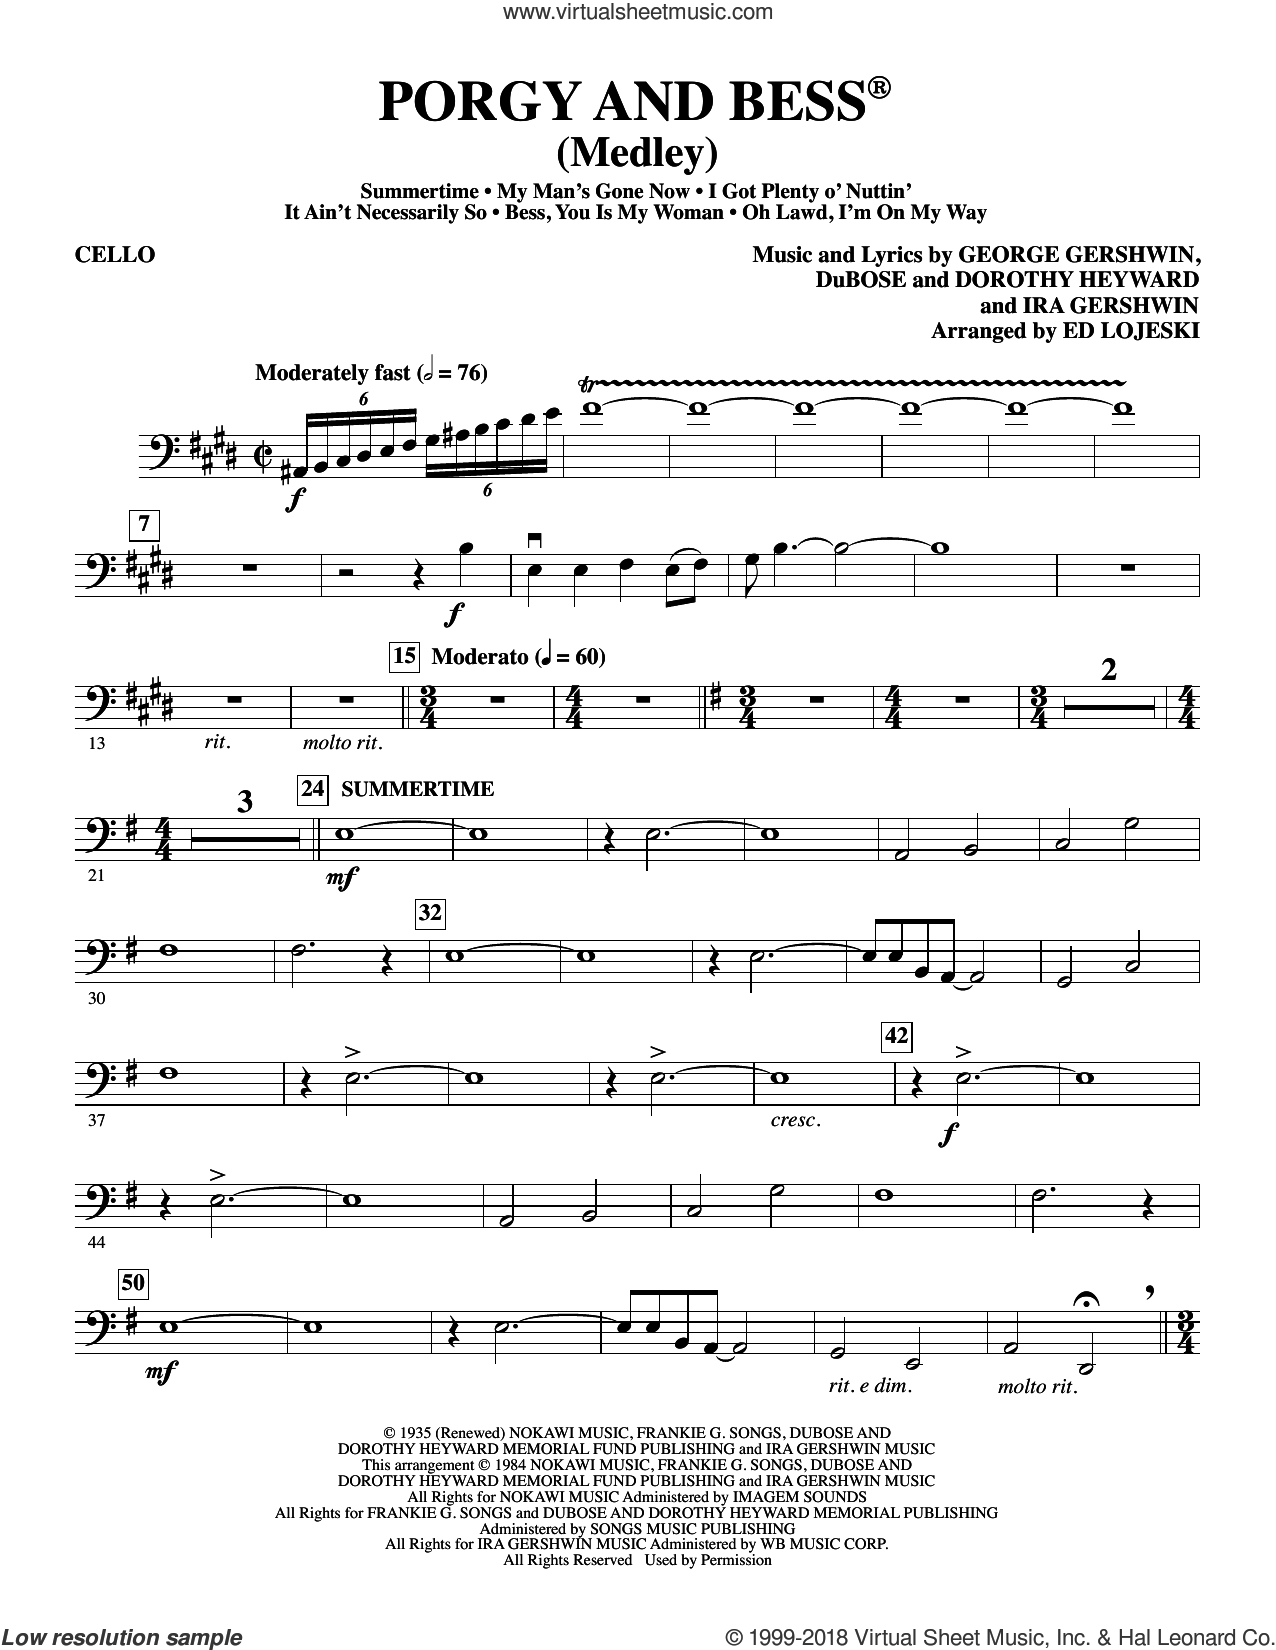 Porgy and Bess (Medley) sheet music for orchestra/band (cello) by Ira Gershwin, Ed Lojeski, Dorothy Heyward, DuBose Heyward and George Gershwin. Score Image Preview.